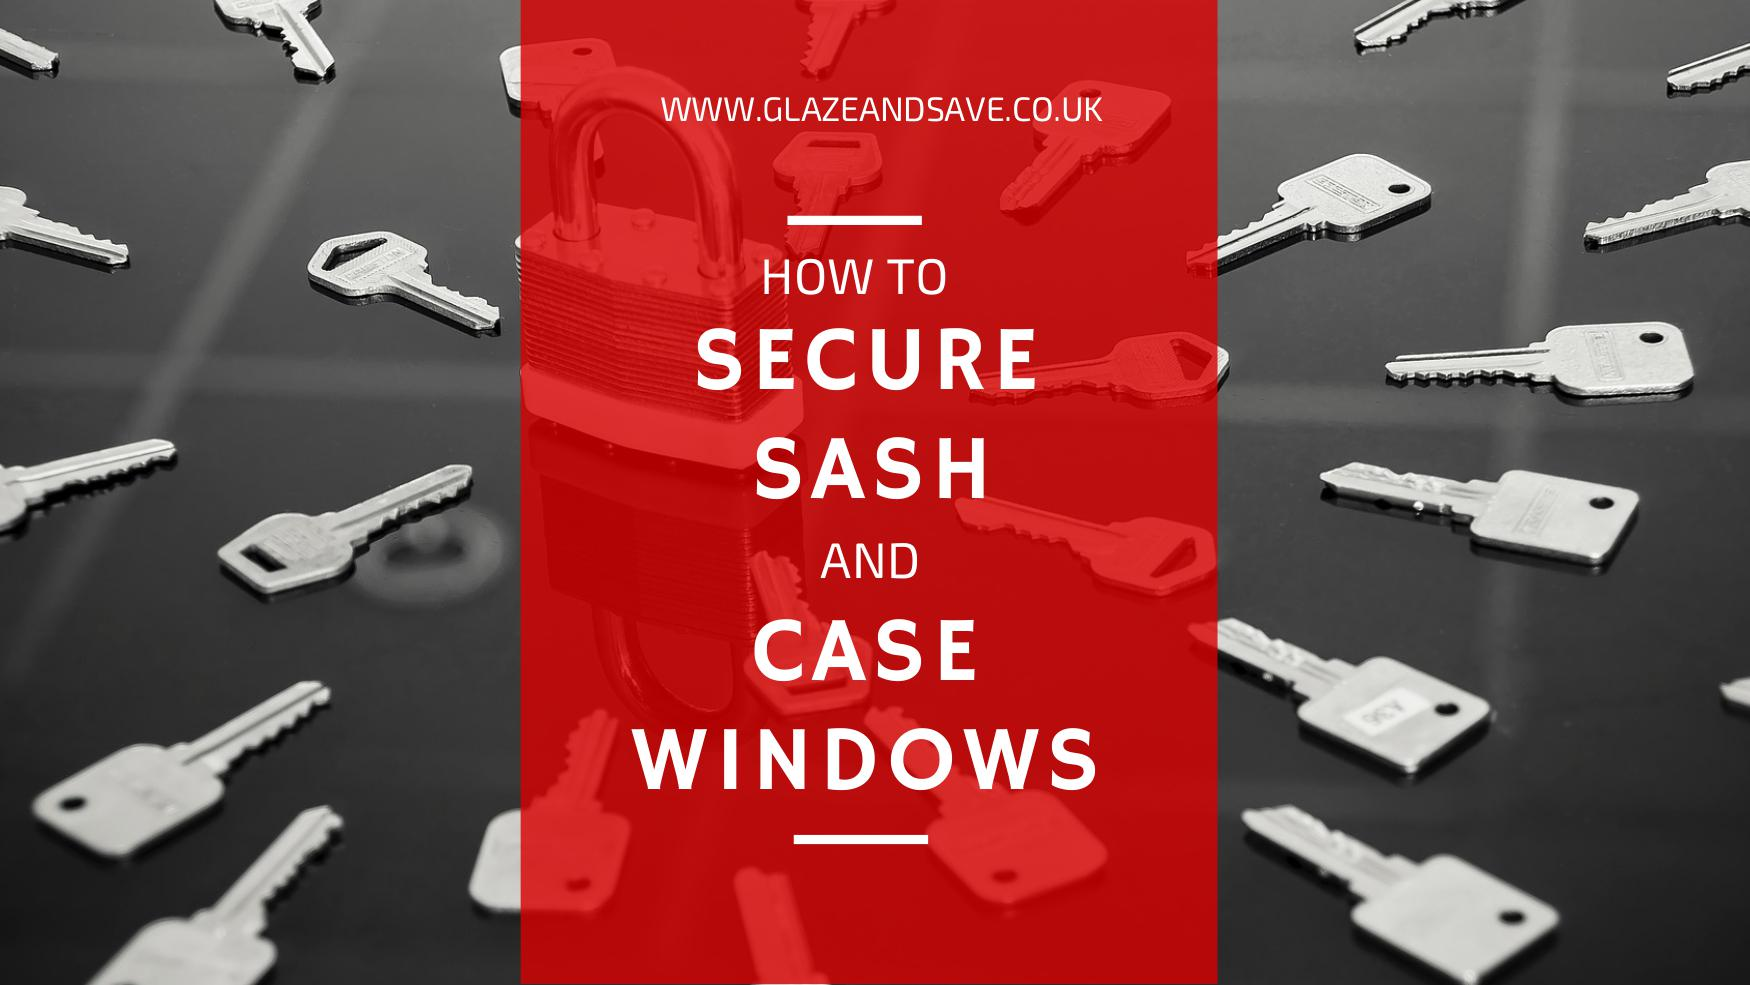 National home security month: how to secure sash and case windows by glaze and save bespoke magnetic secondary glazing and draught proofing.